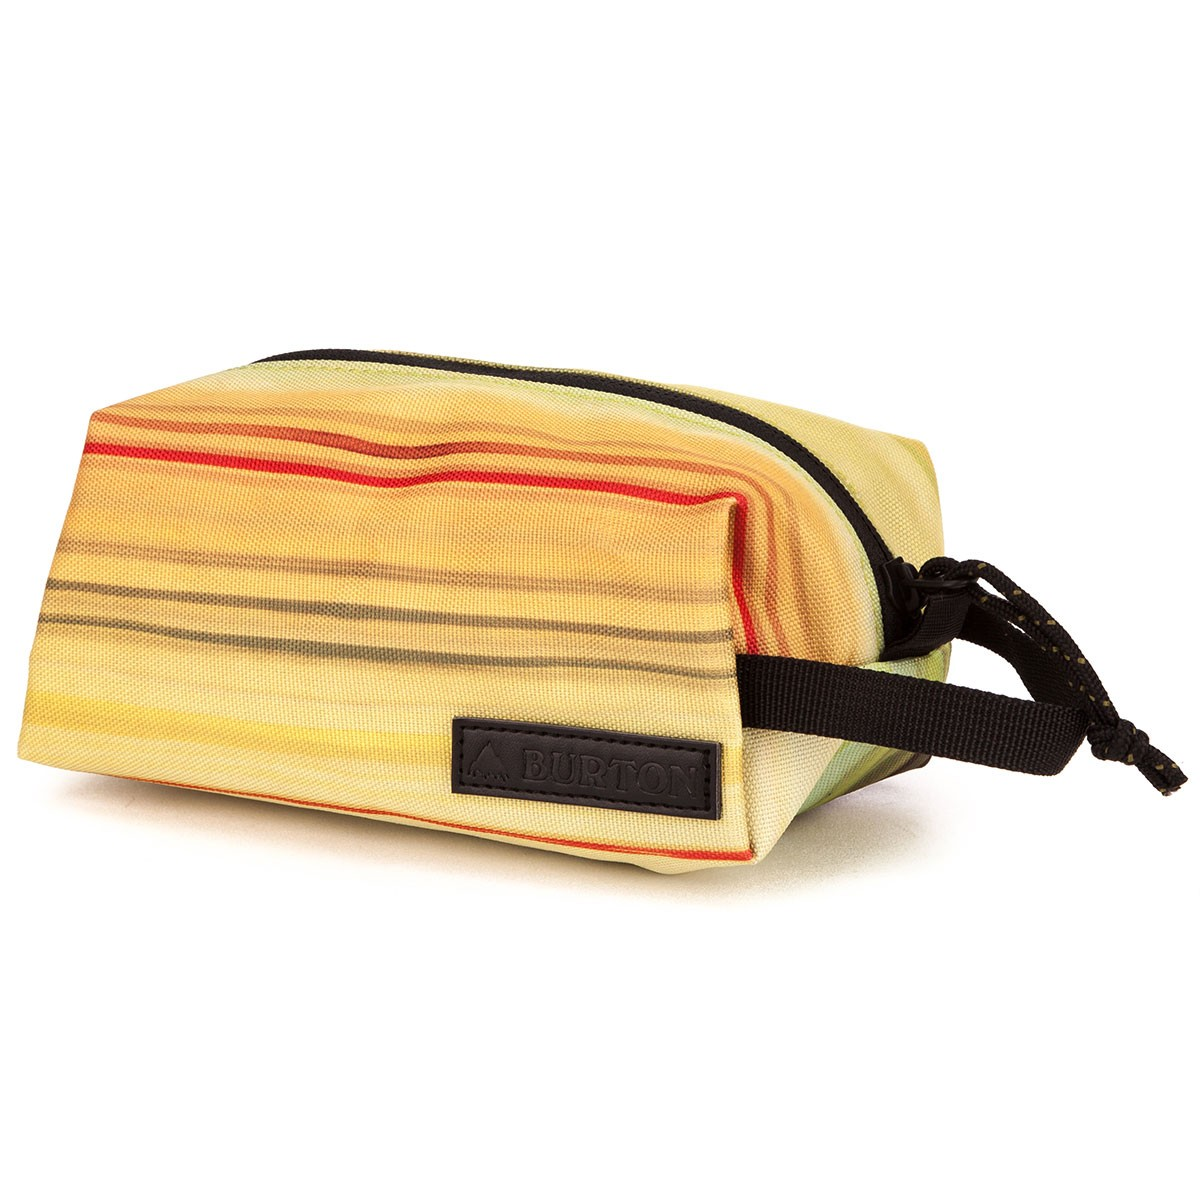 Burton Accessory Case - Striped Tuna